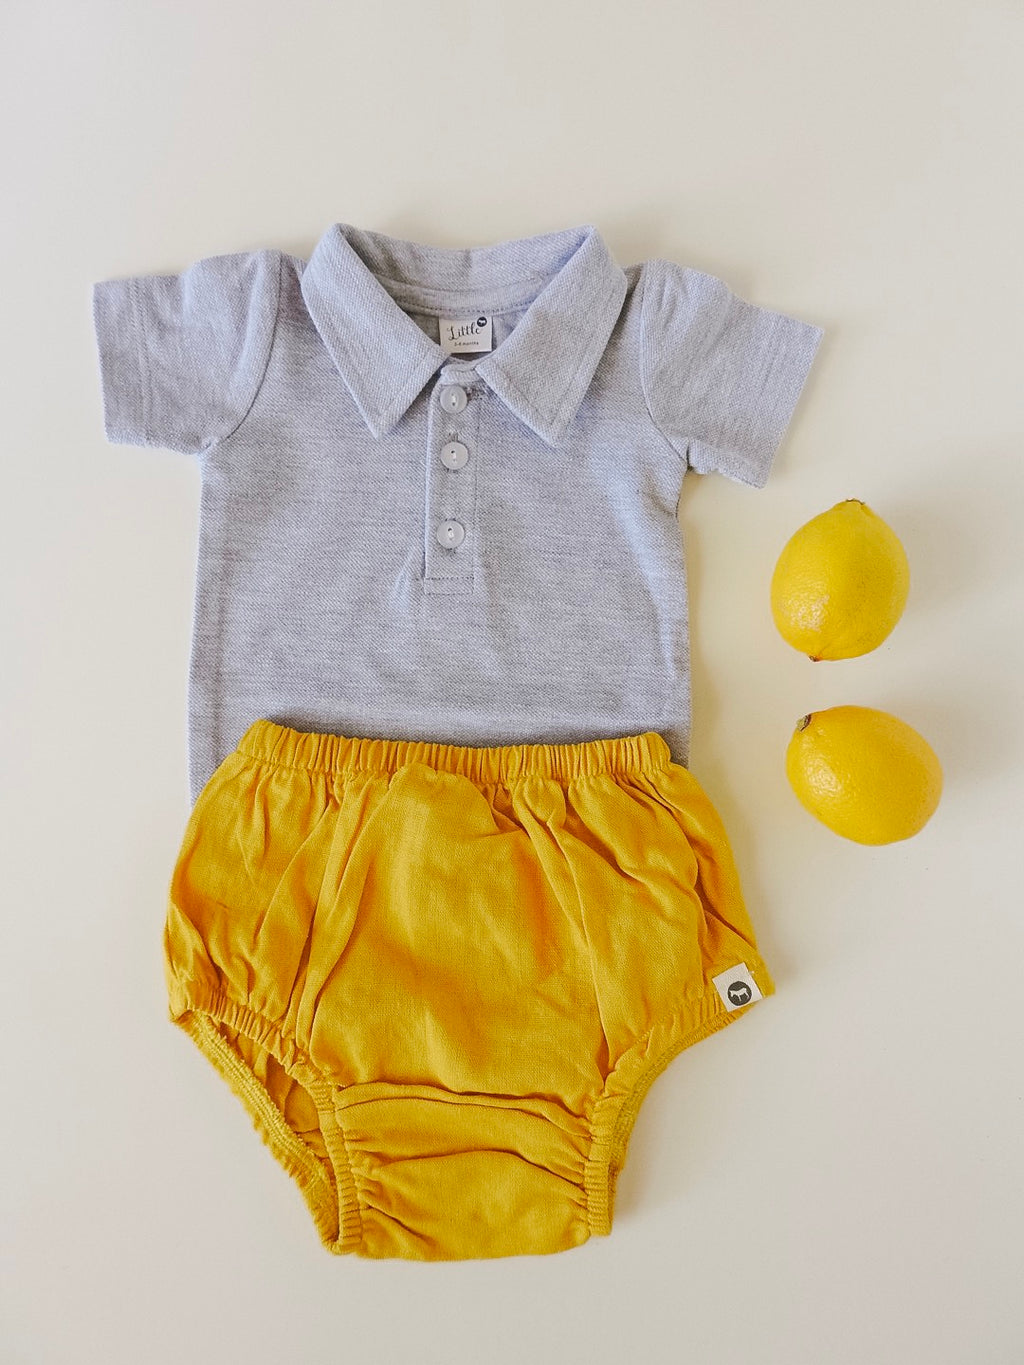 Little golfer set